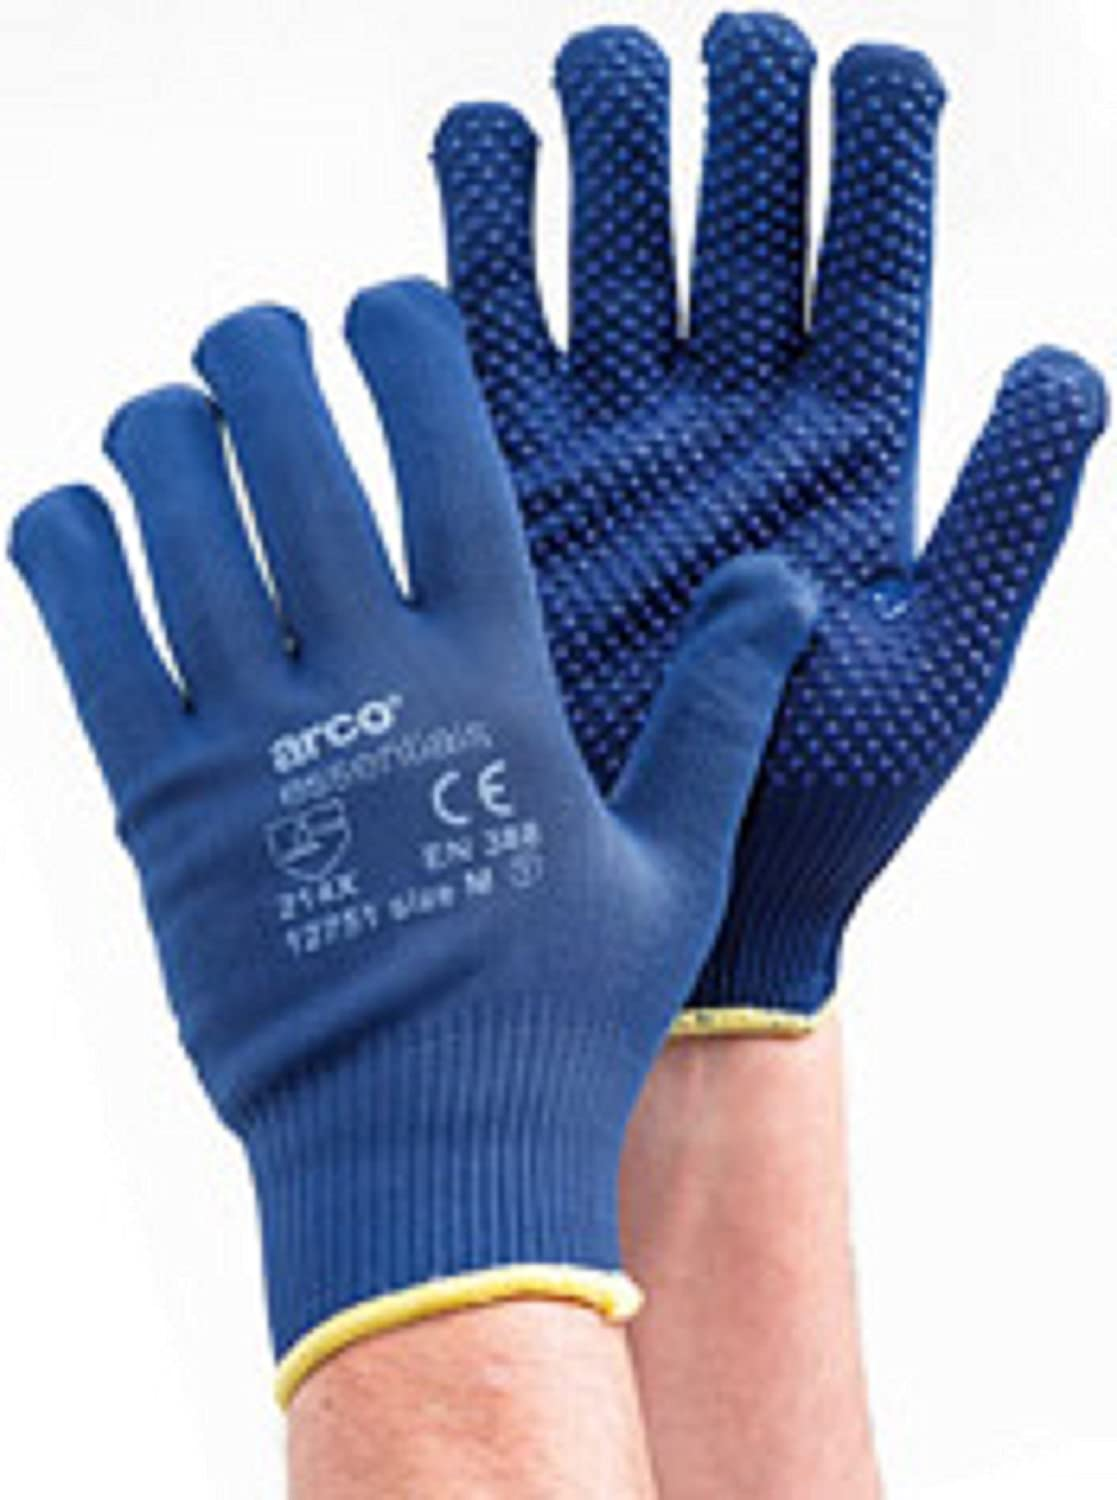 ARCO Thermal Dotted Gloves All Sizes Available Limited Stock